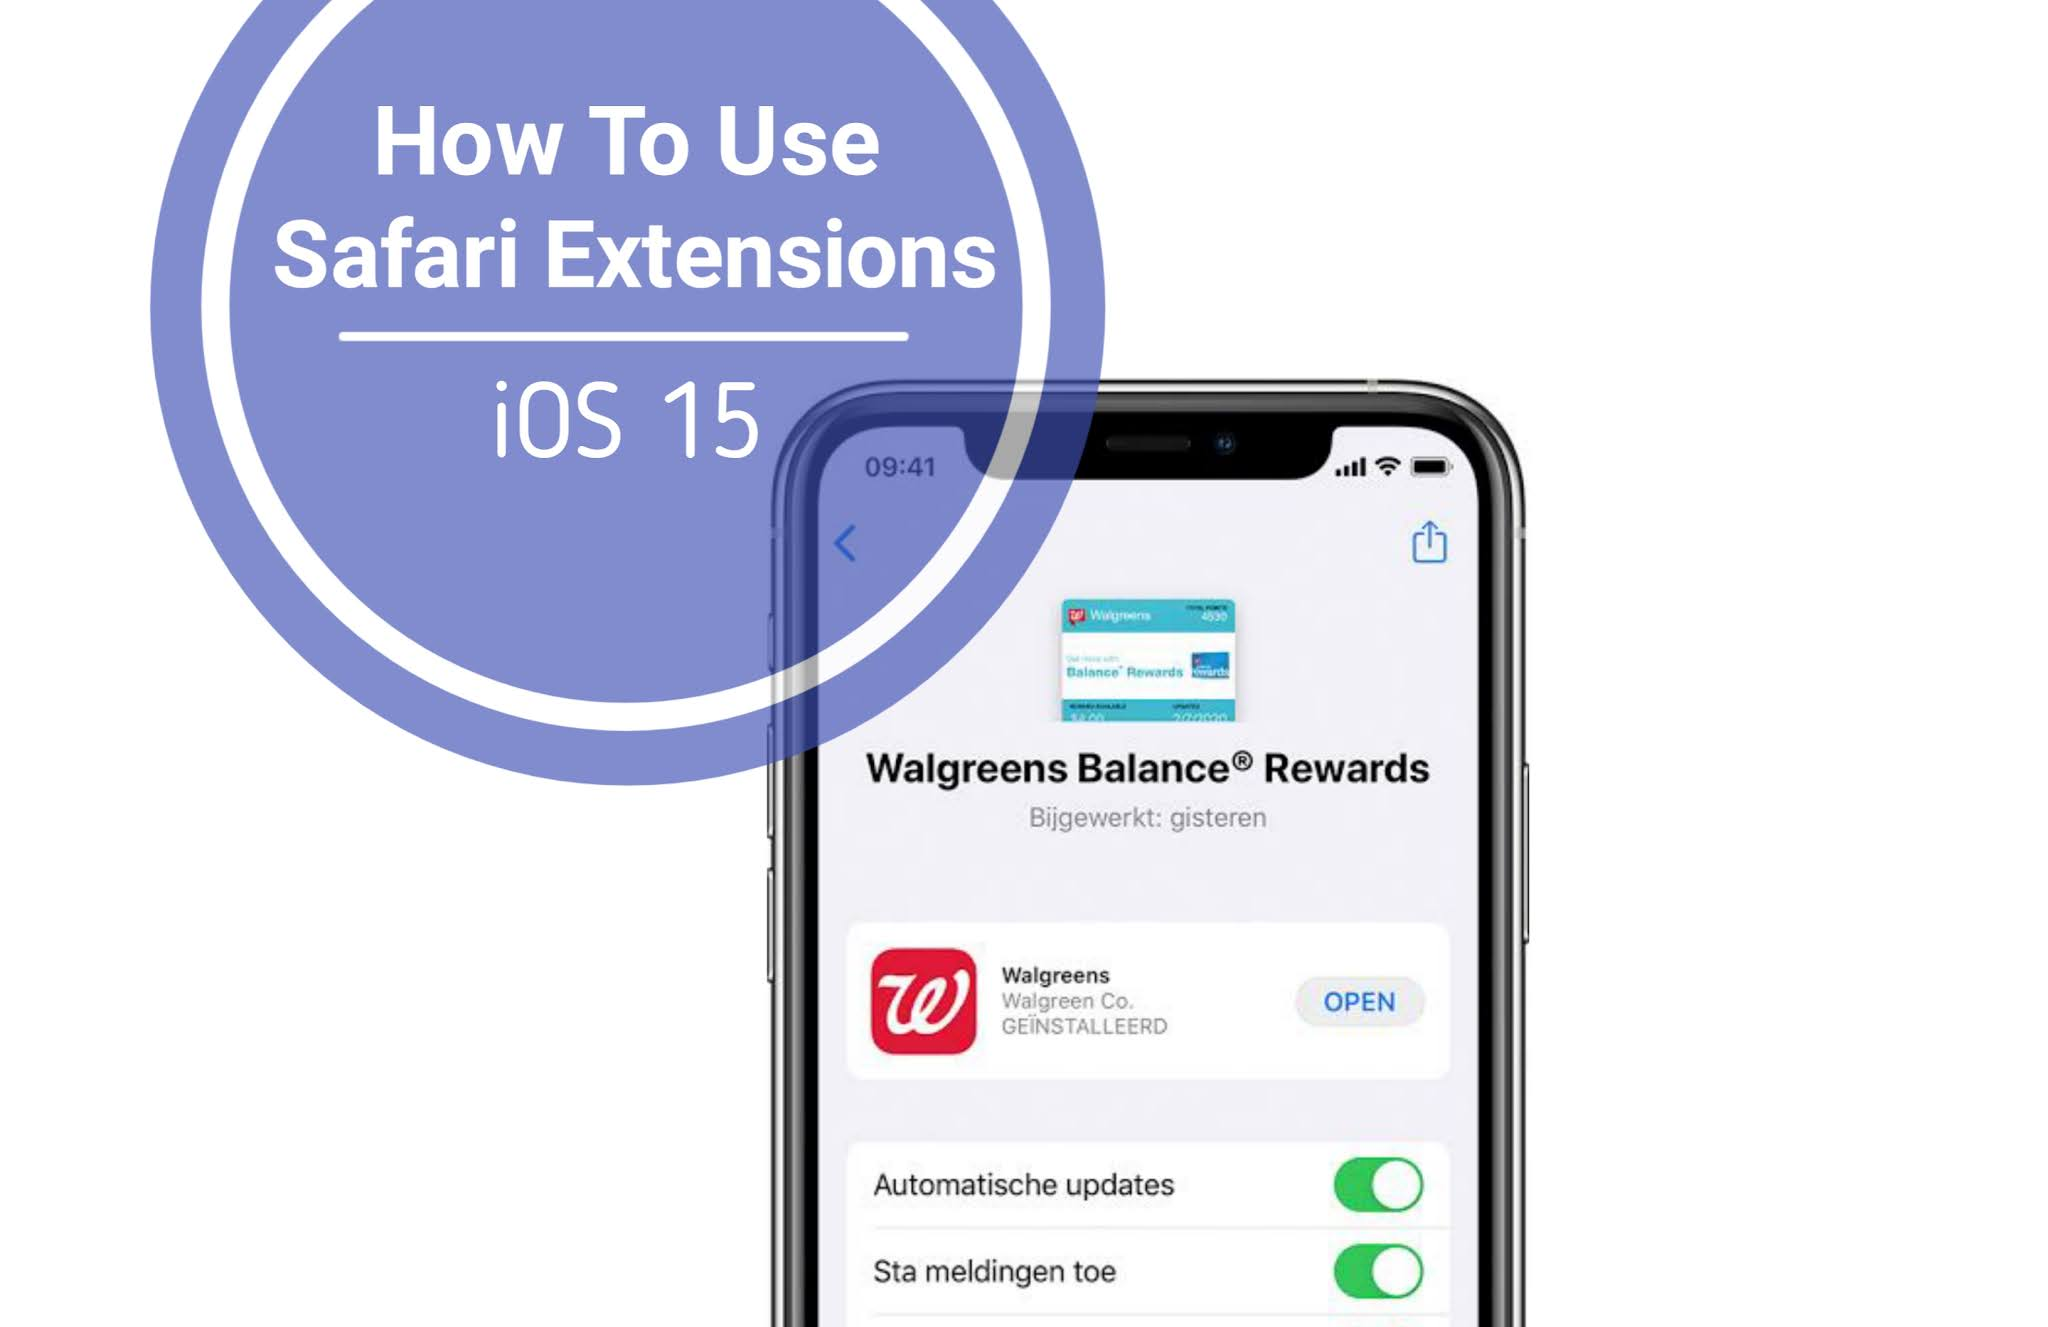 How To Use Safari Extensions On iOS 15 iPhone And iPads